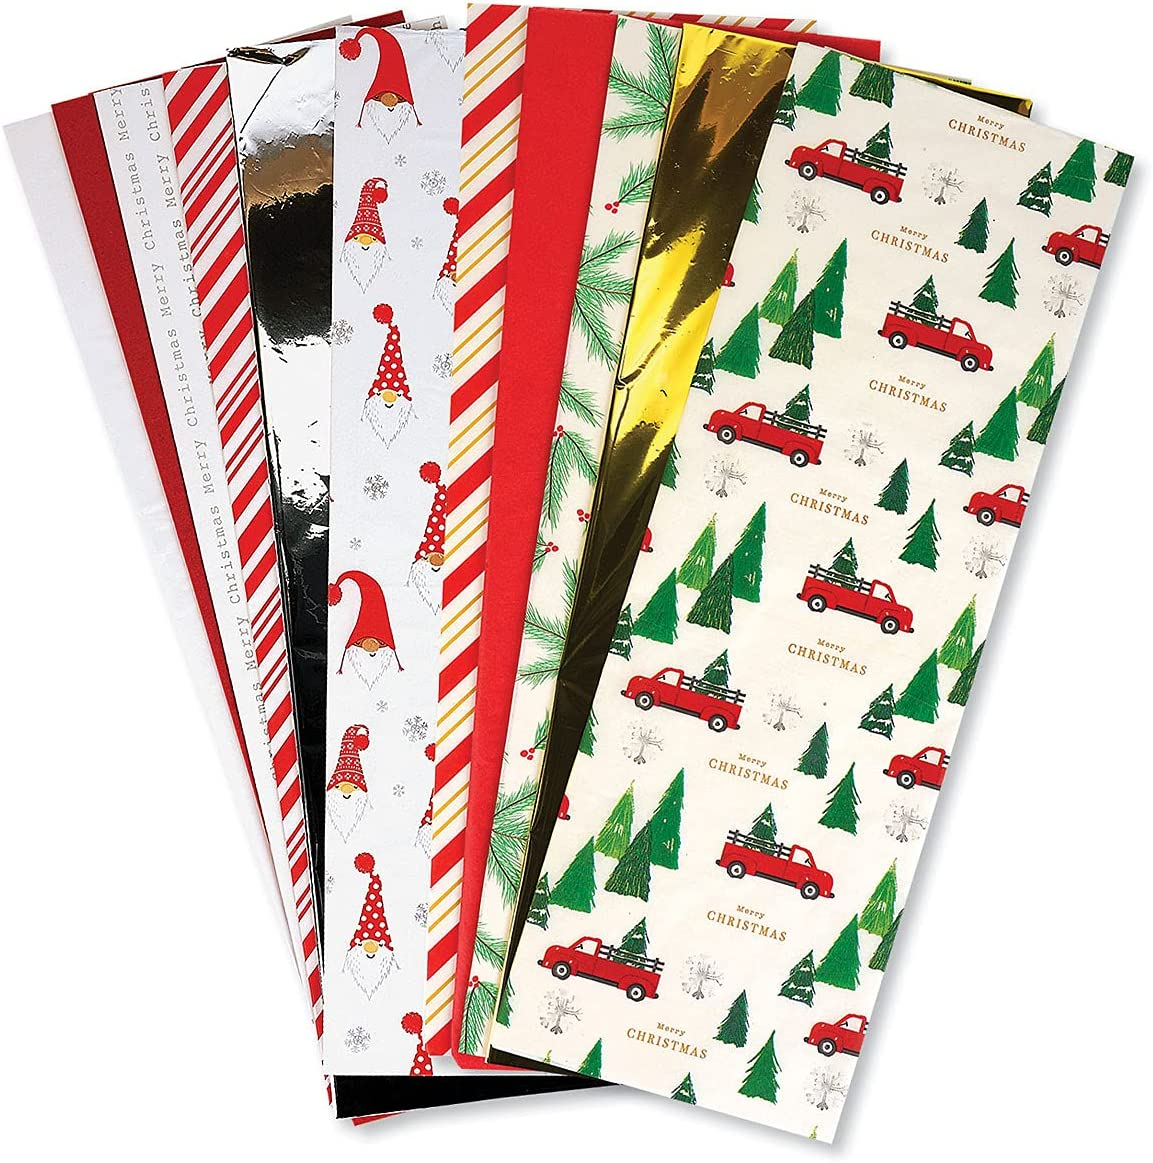 Christmas Tissue Value Pack- Prints and Award-winning store Solids Set Sheet 100 Max 86% OFF of